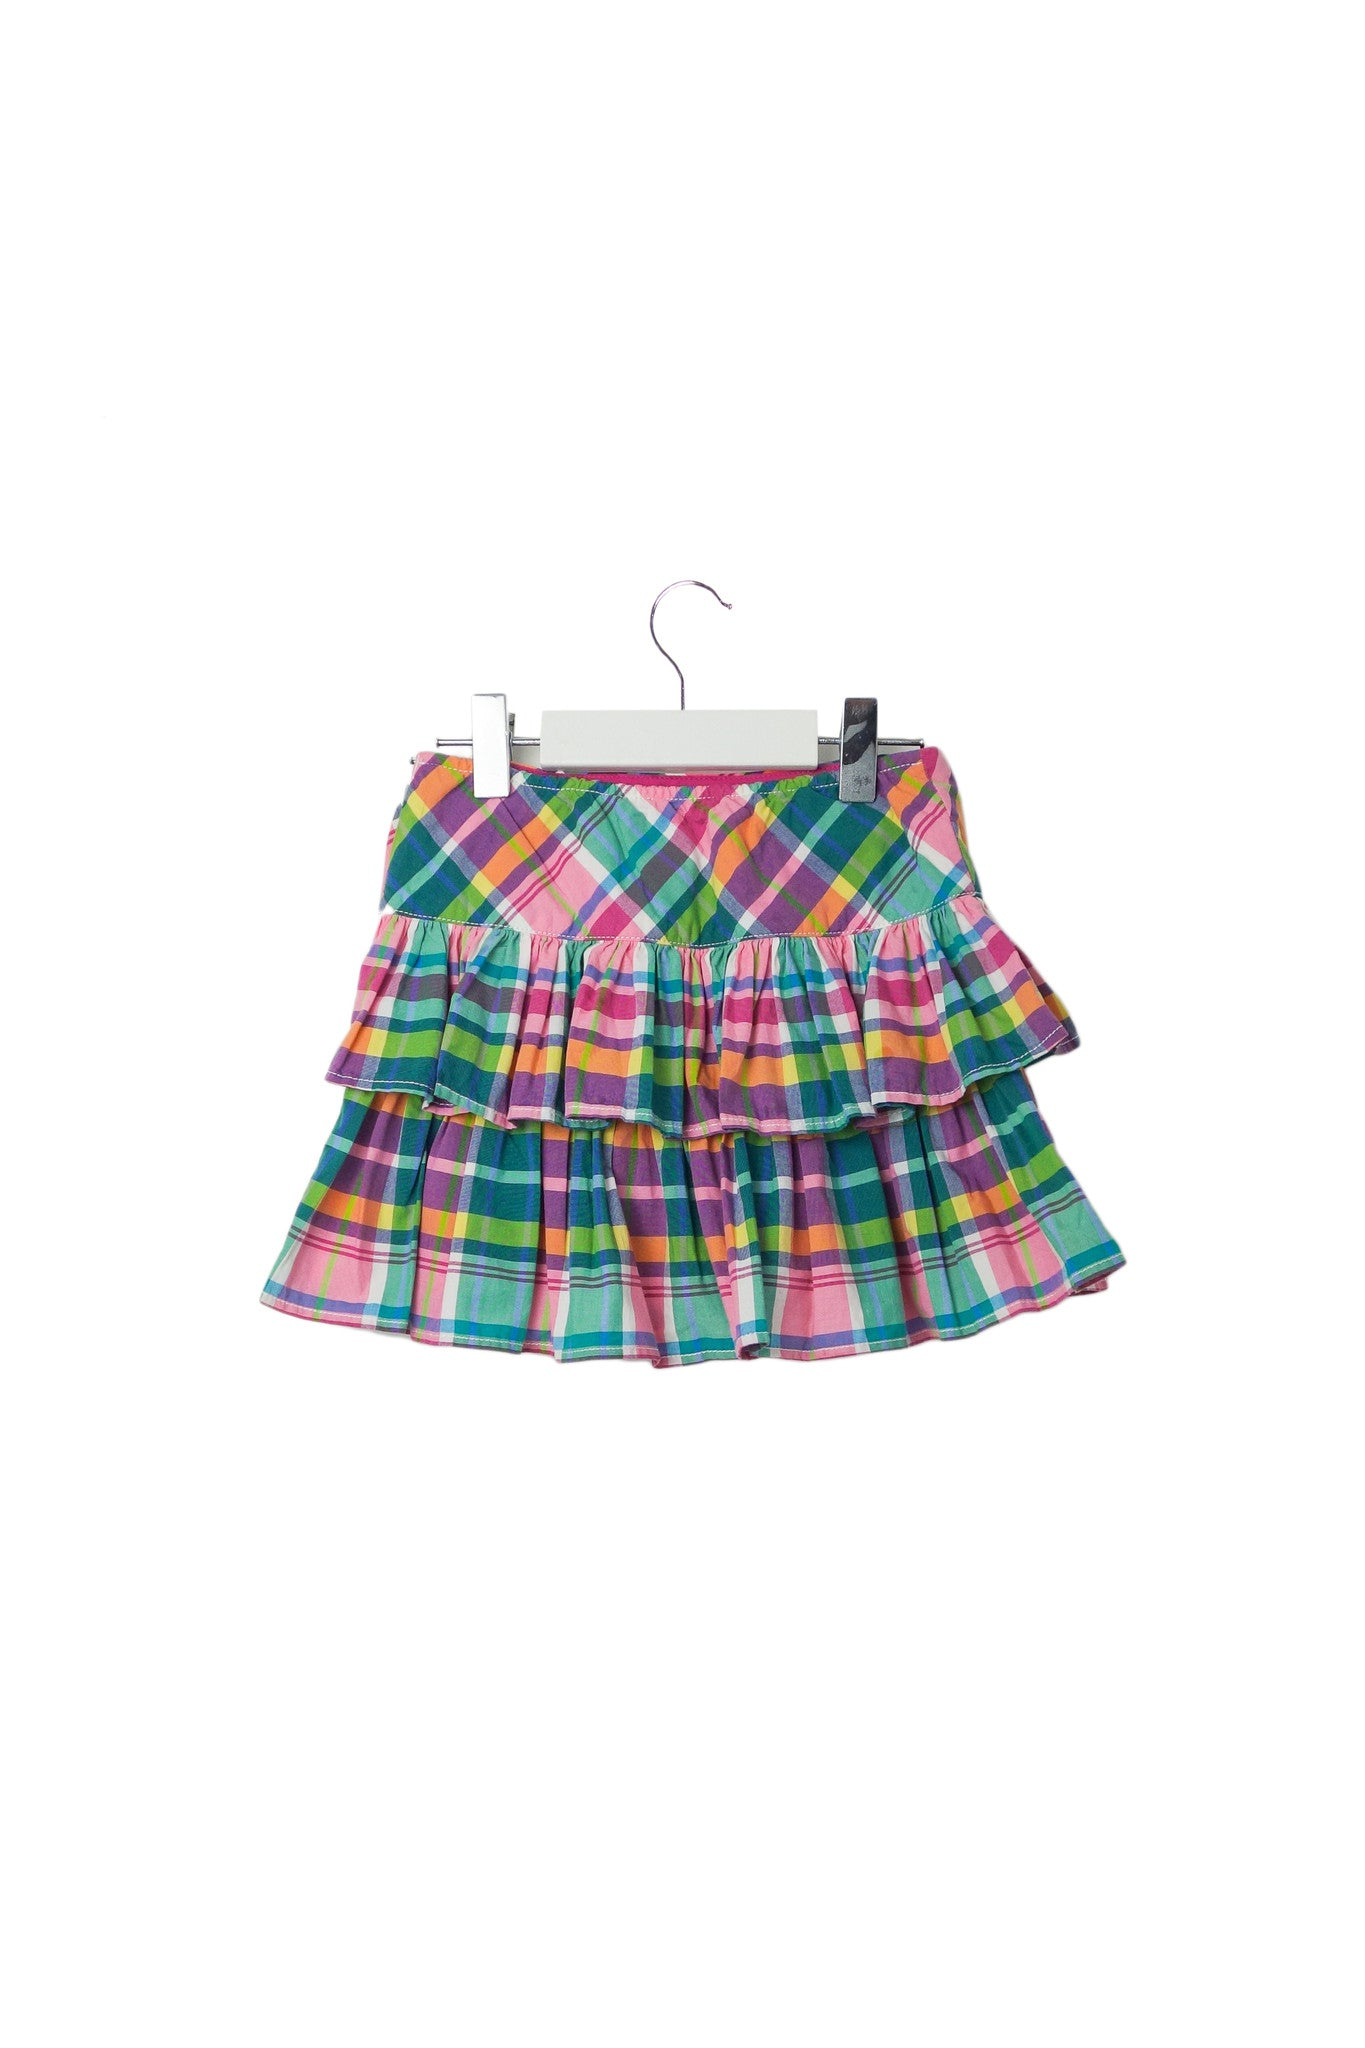 10003140 Ralph Lauren Kids~Skirt 4T at Retykle